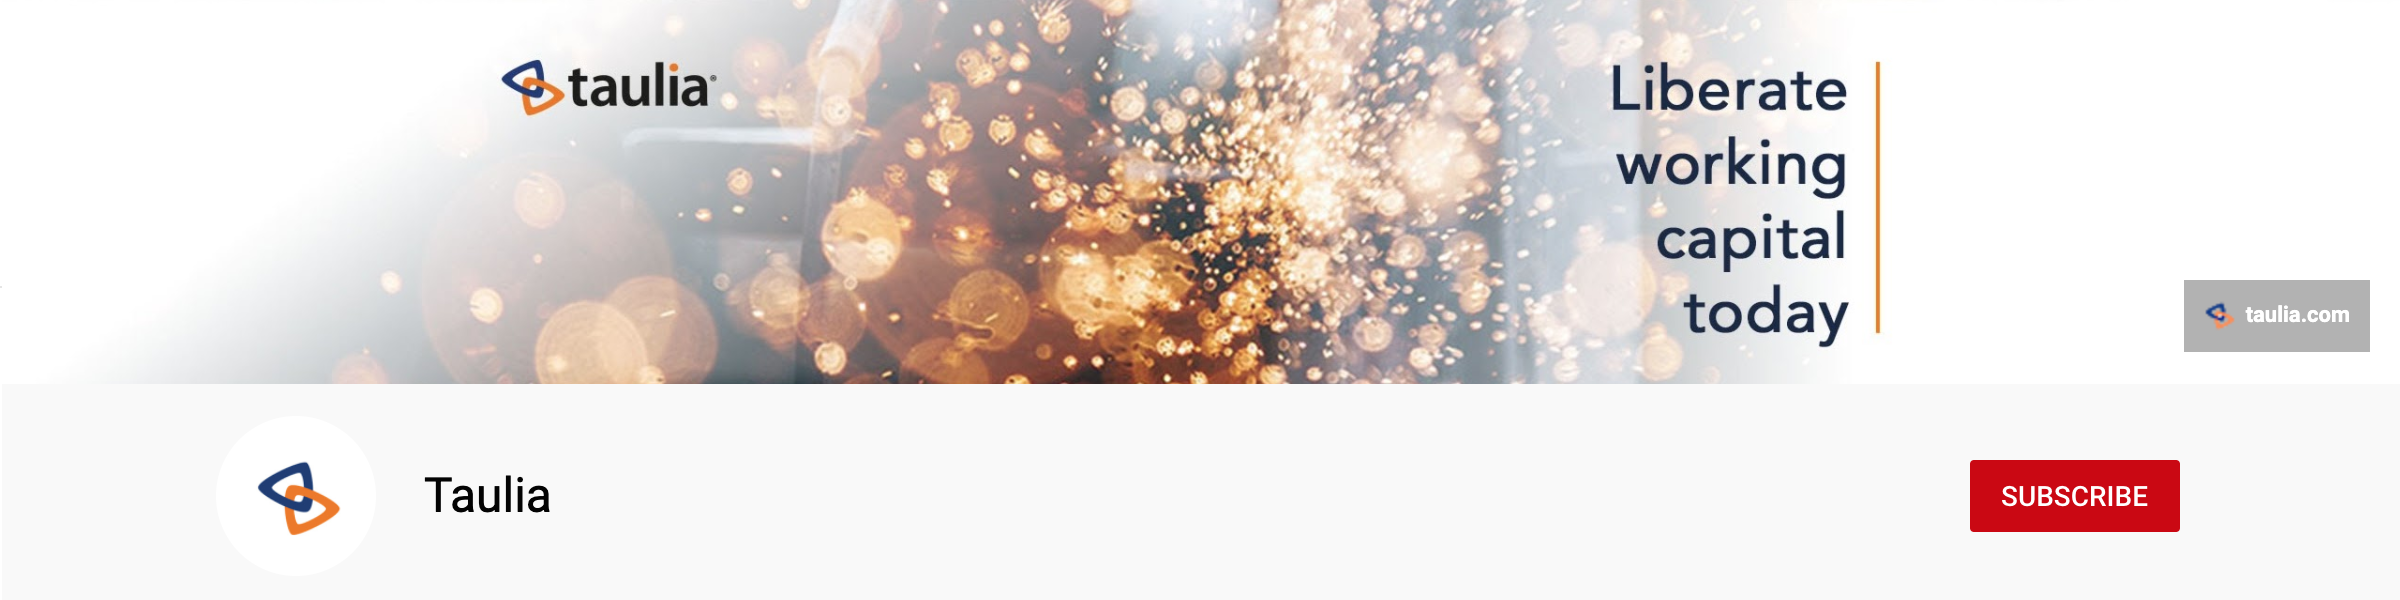 taulia youtube banner